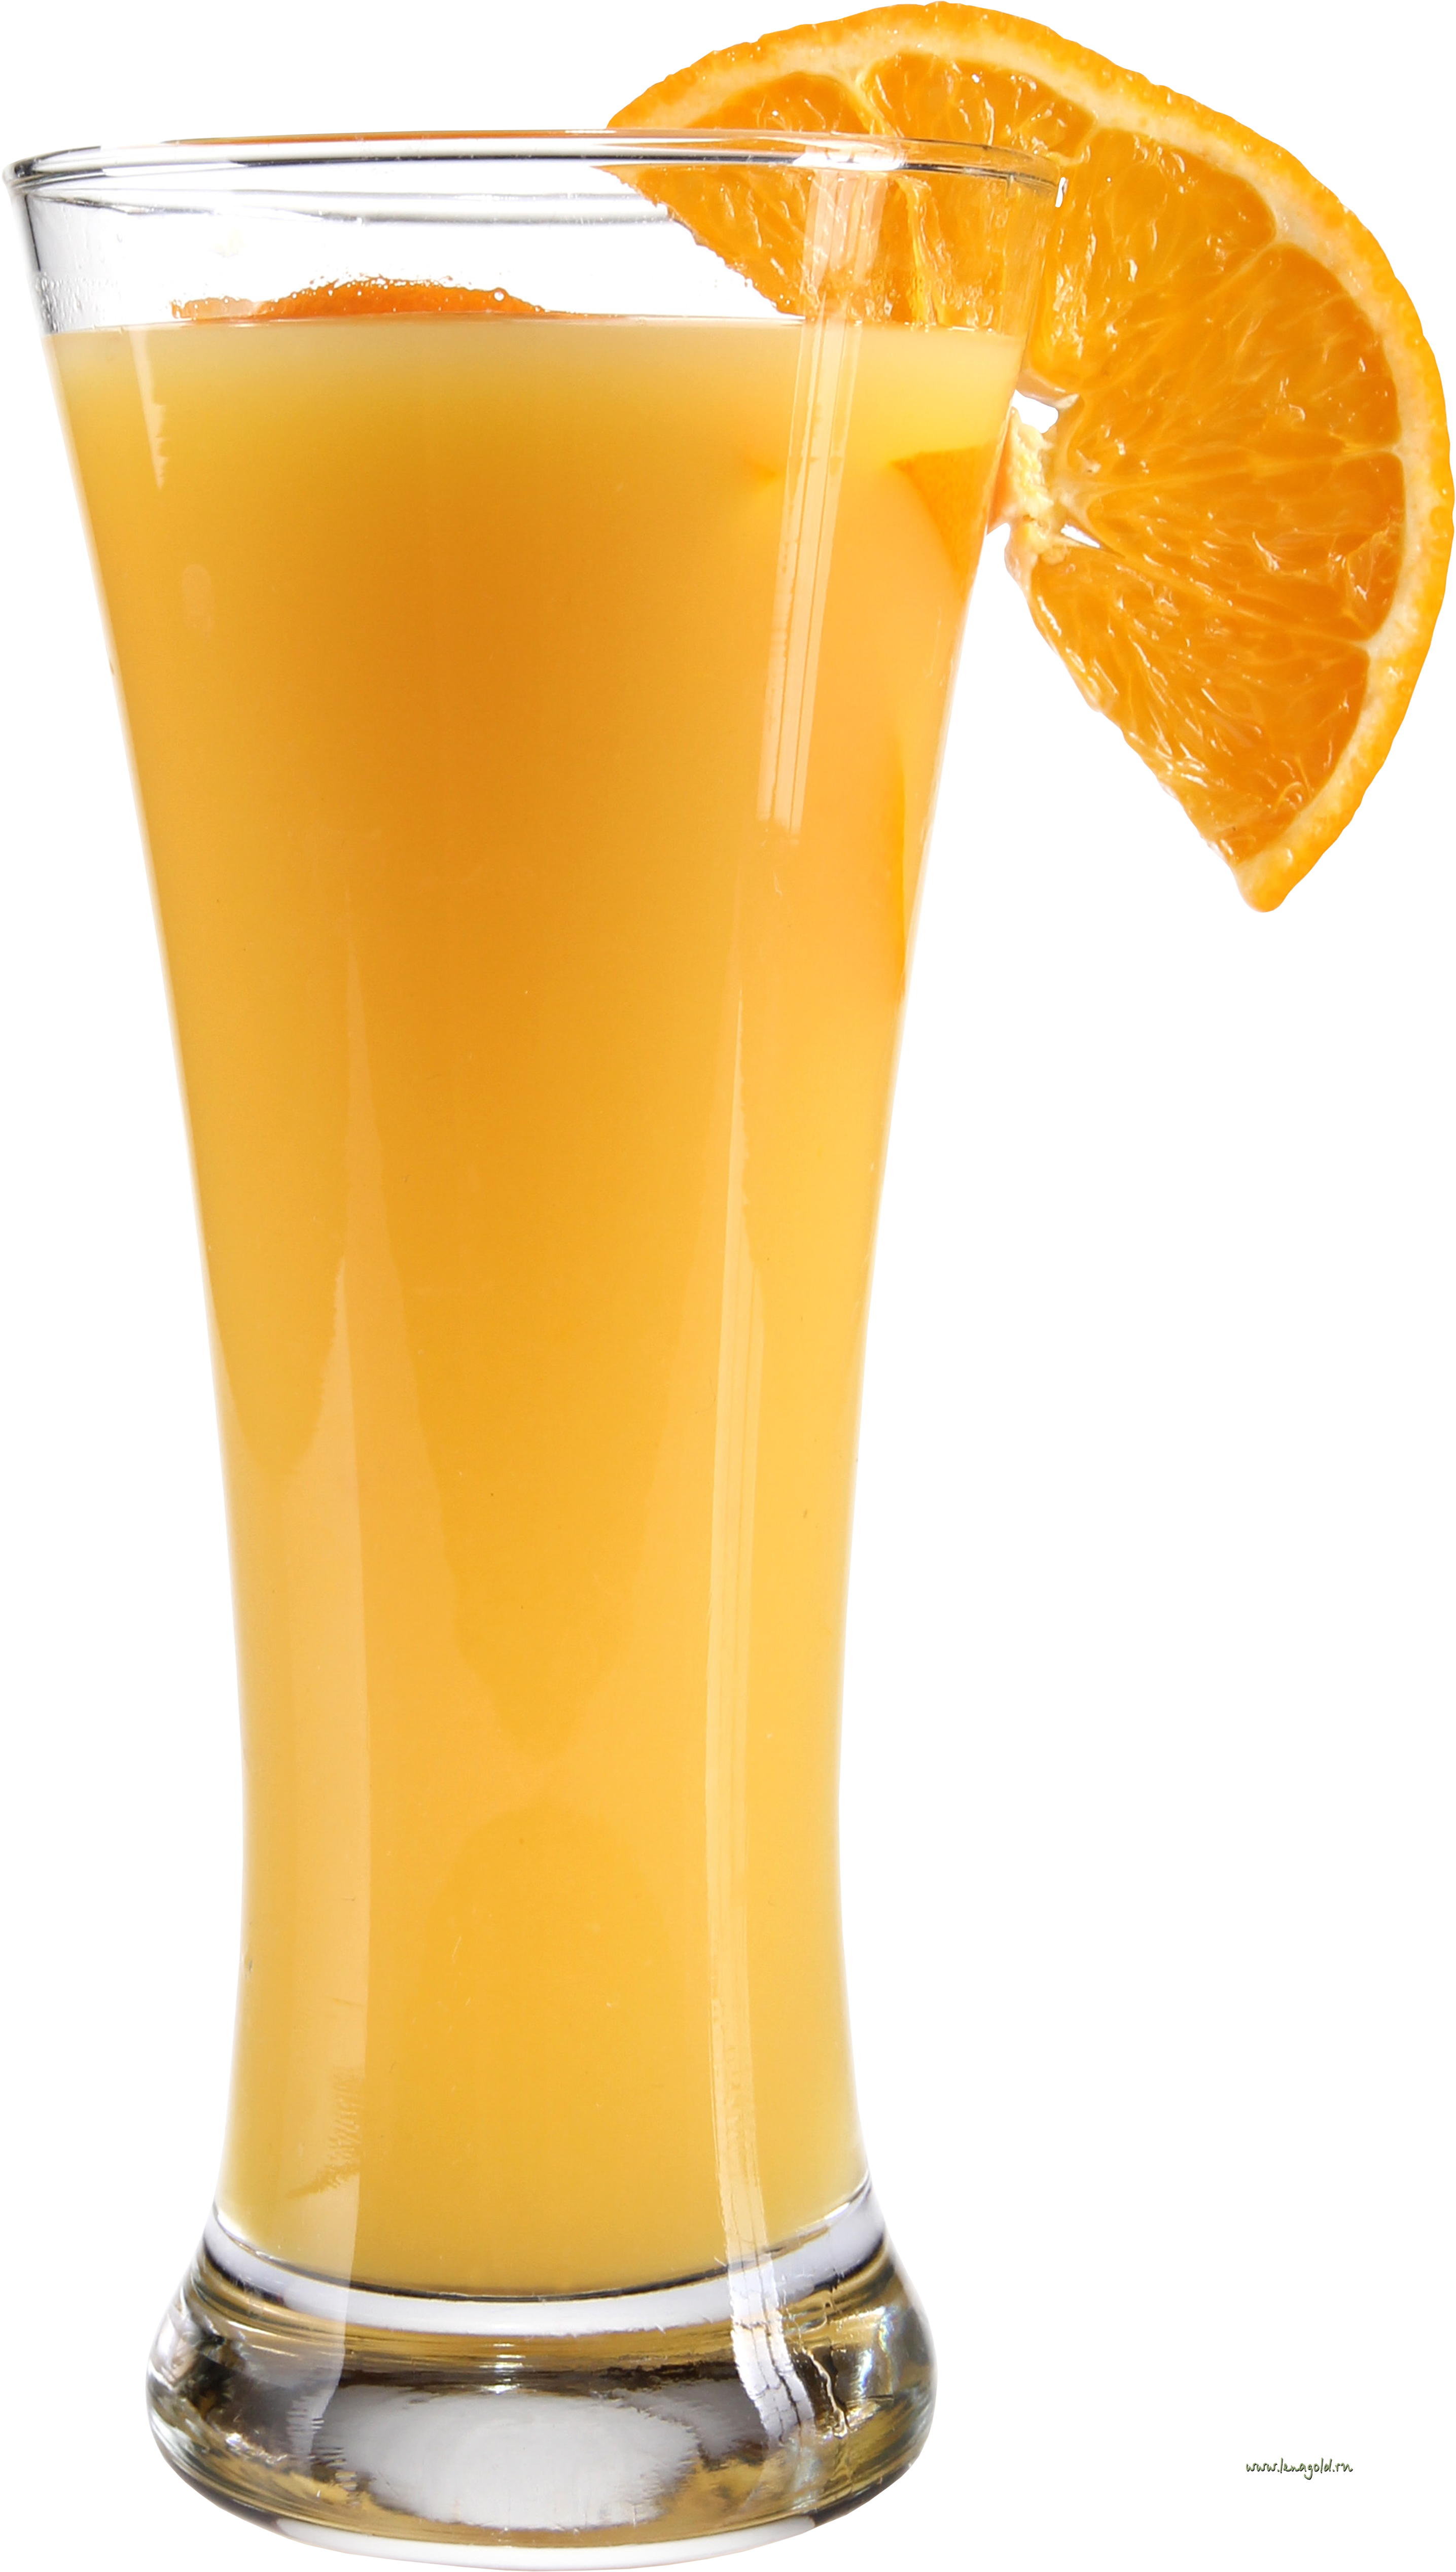 Download wallpaper glass with orange orange juice photo 2871x5071